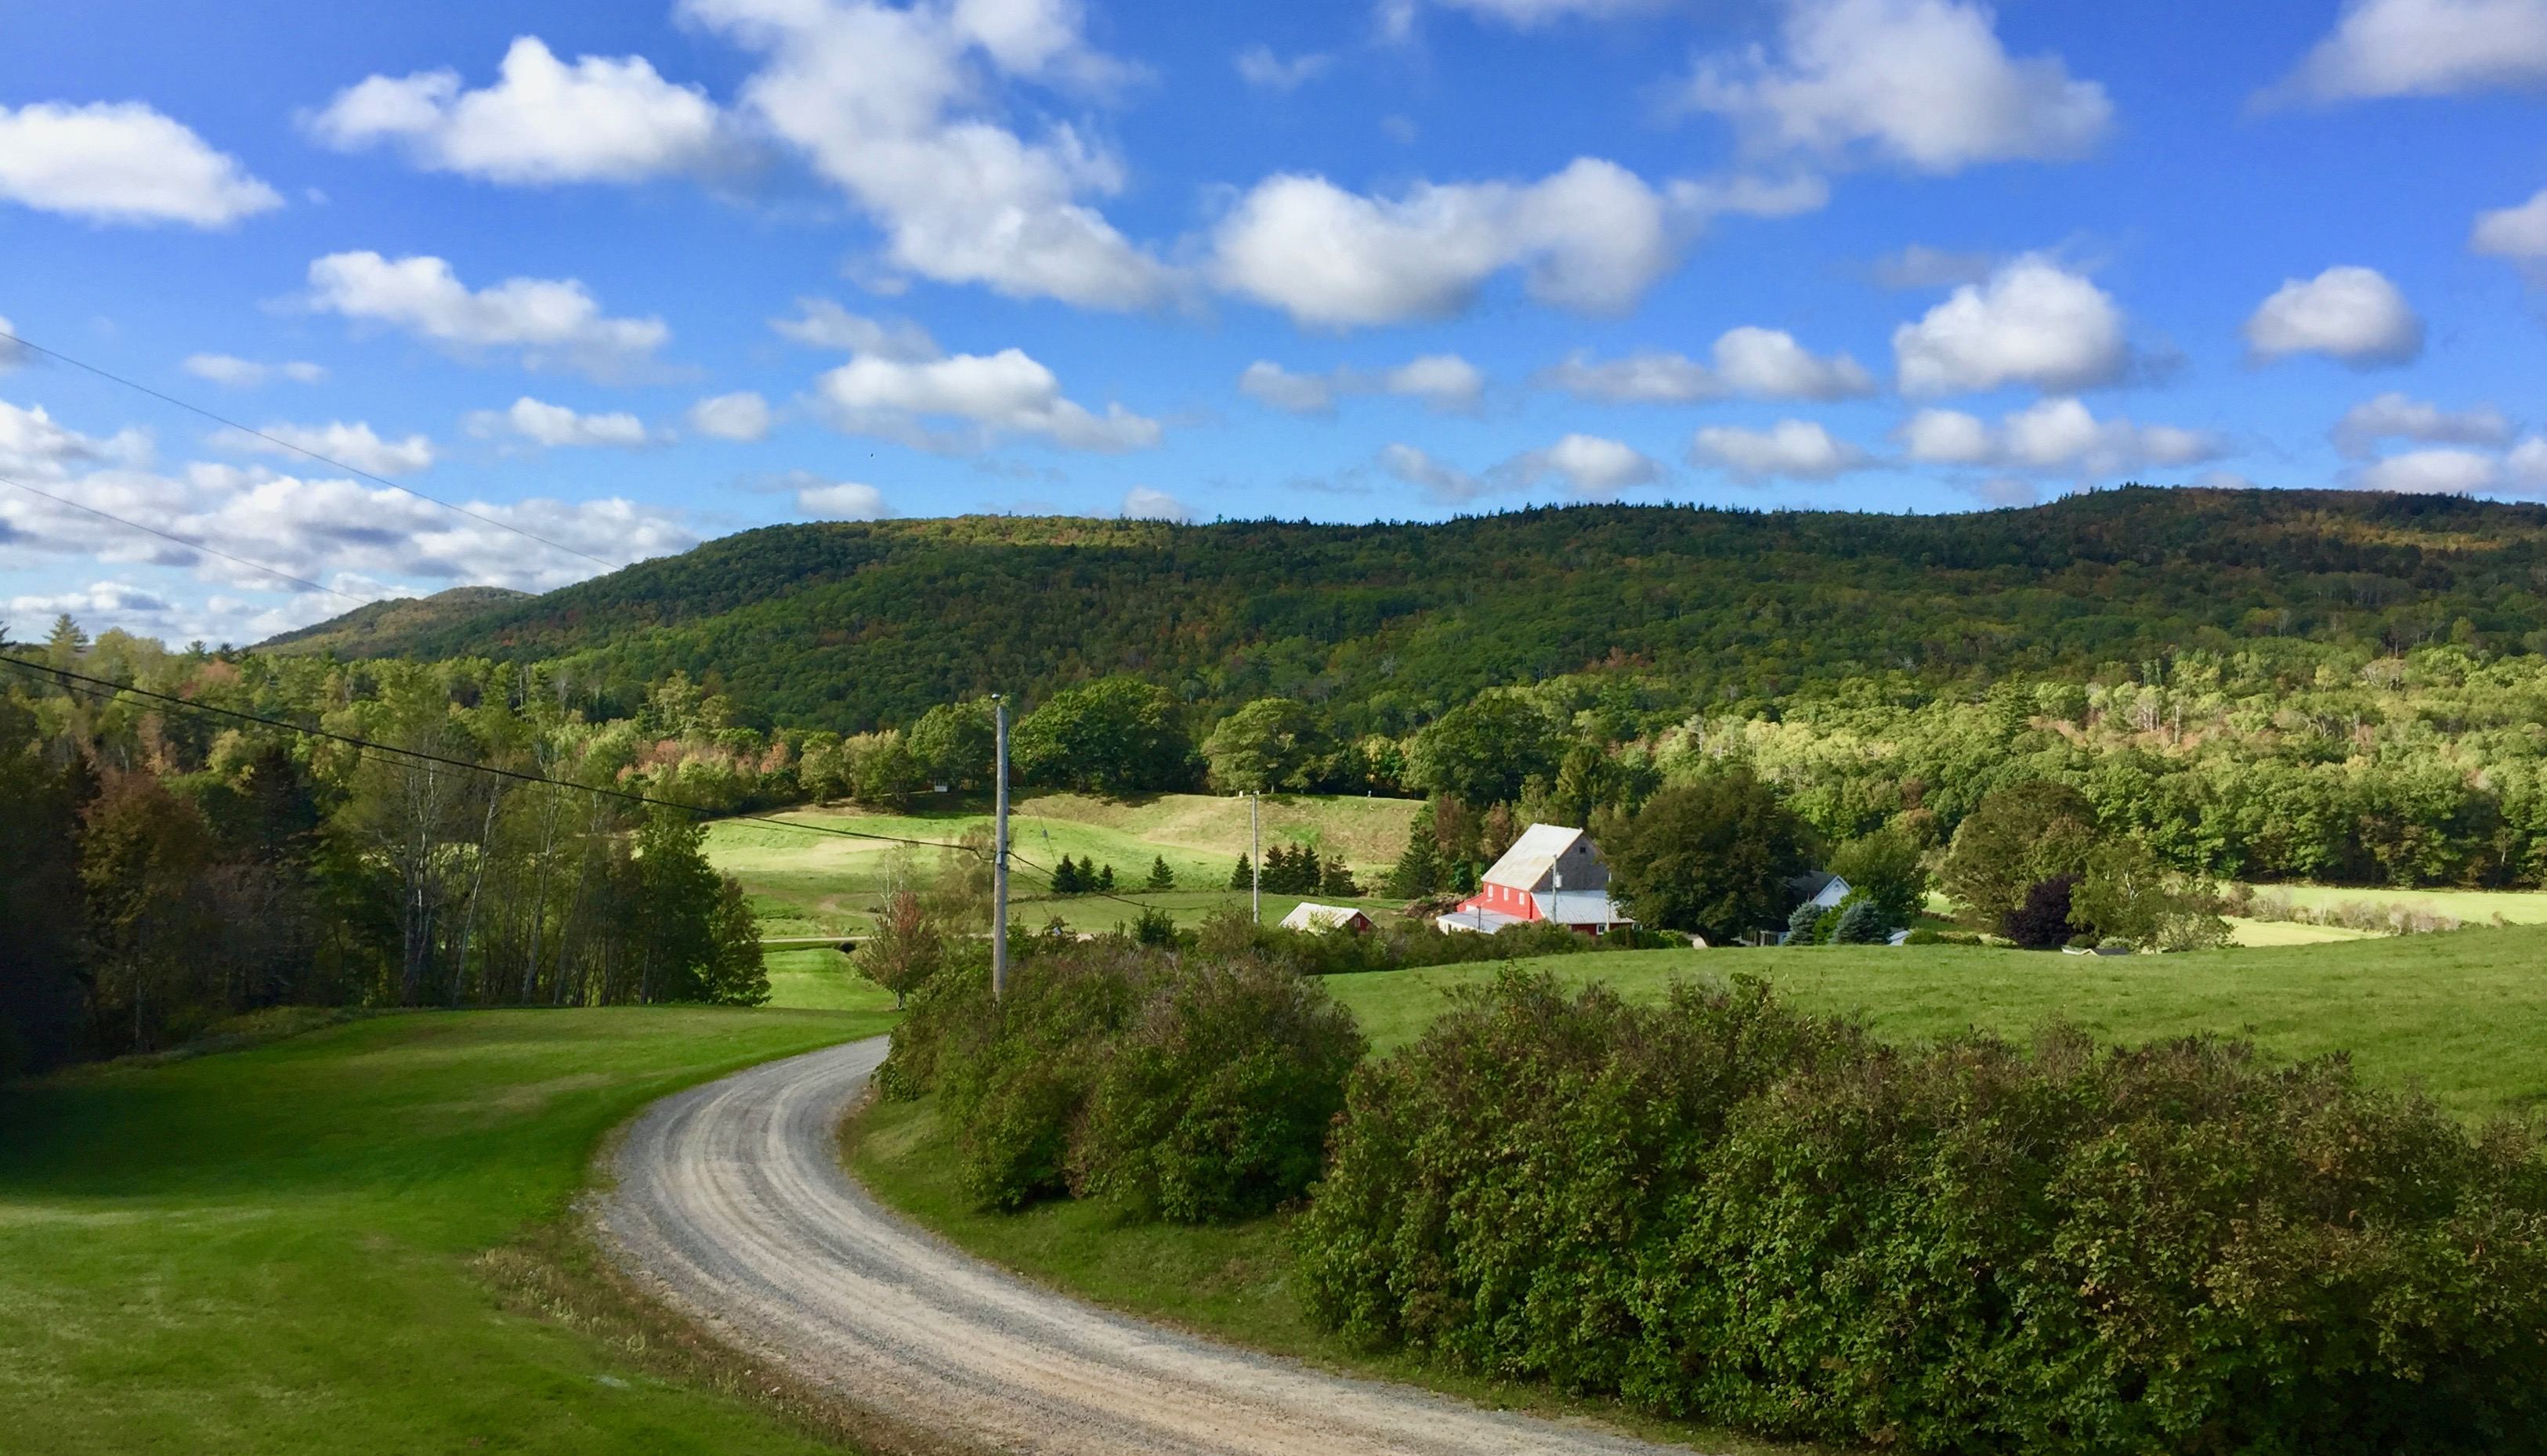 Mill Section, Nova Scotia - Farmland in the valley of the Appalachian low mountains